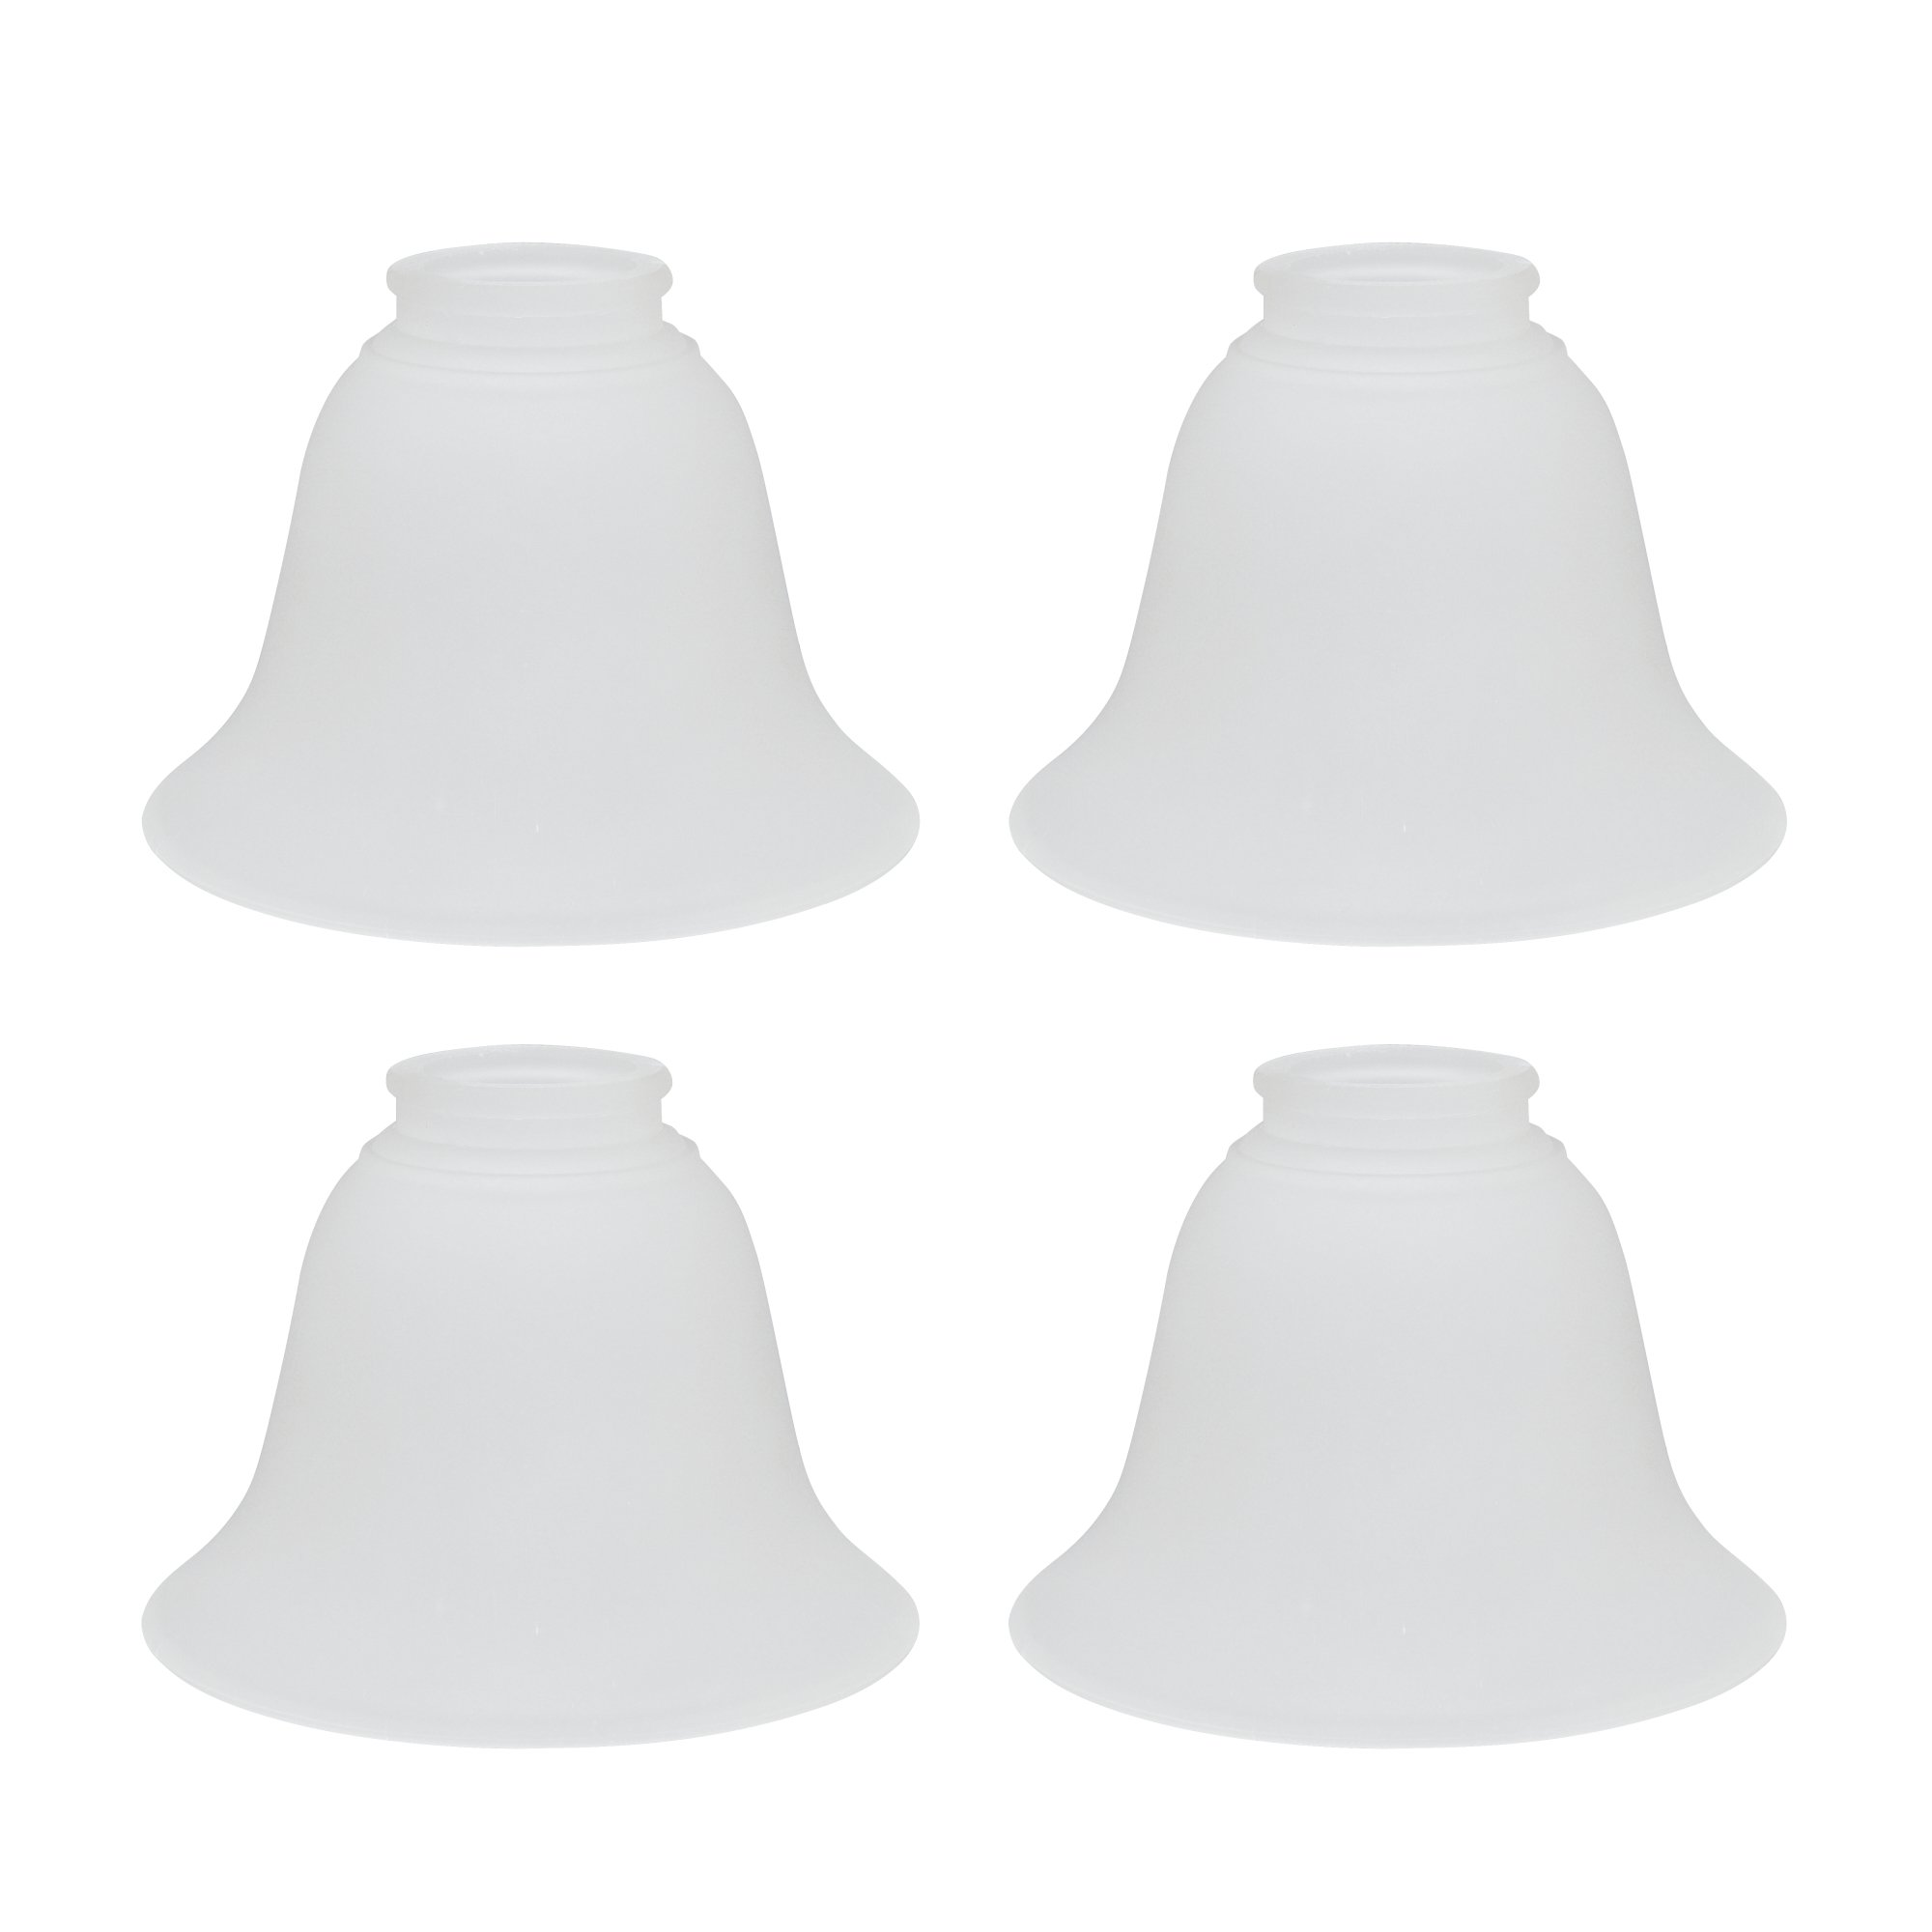 Aspen Creative 23023-4 Transitional Style 4 Pack Replacement Glass Shade, 2 1/4'' x 4 1/2'' x 6'', Frosted